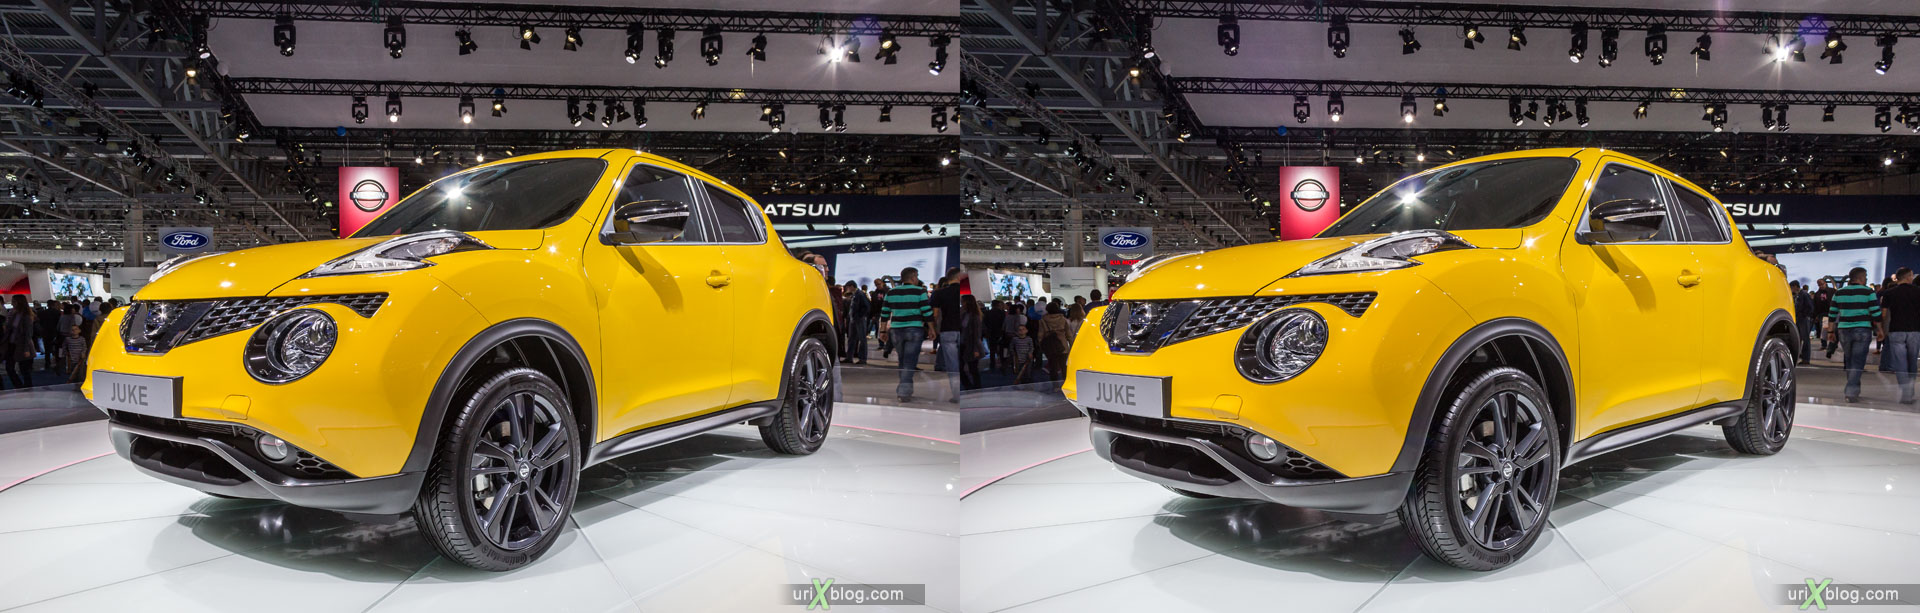 Nissan Juke, Moscow International Automobile Salon 2014, MIAS 2014, girls, models, Crocus Expo, Moscow, Russia, 3D, stereo pair, cross-eyed, crossview, cross view stereo pair, stereoscopic, 2014